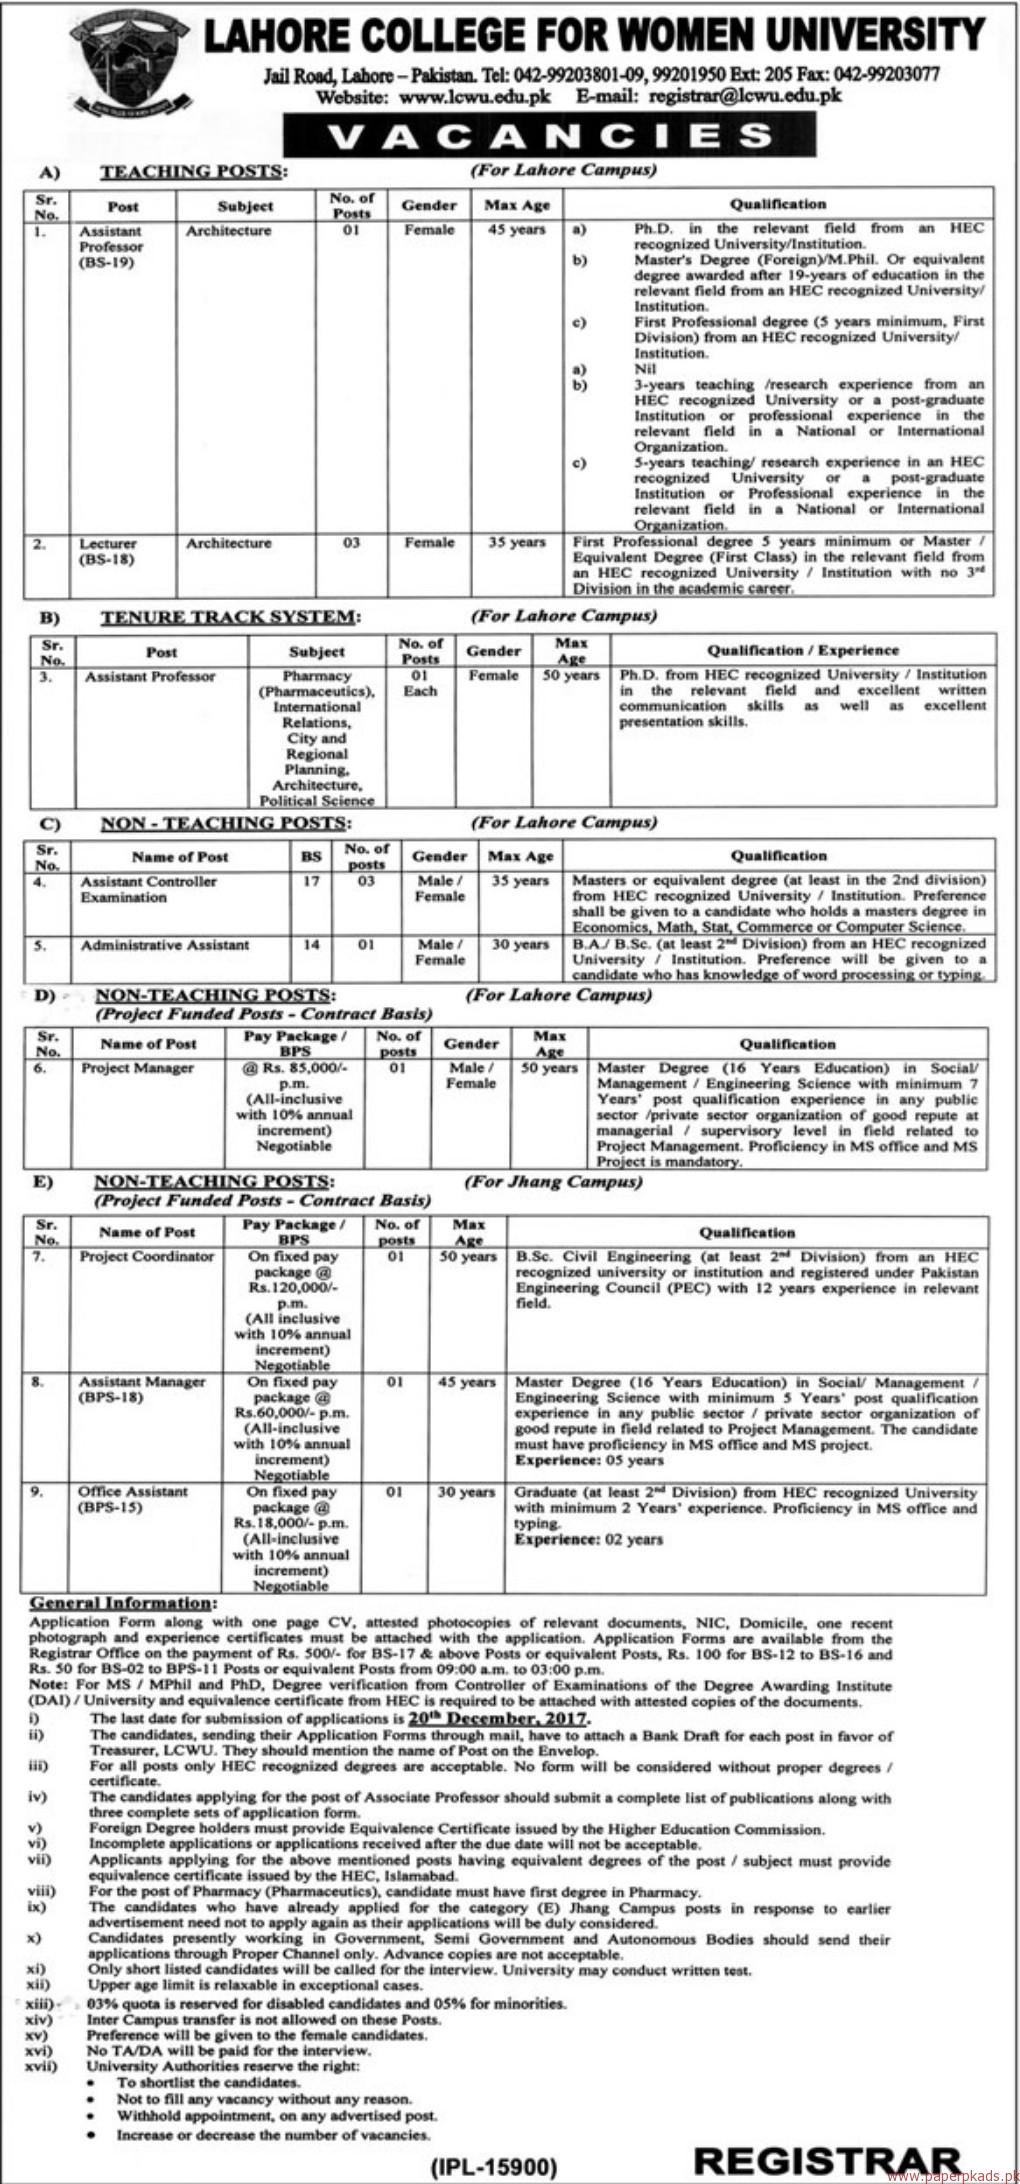 Lahore College for Women University Jobs 2017